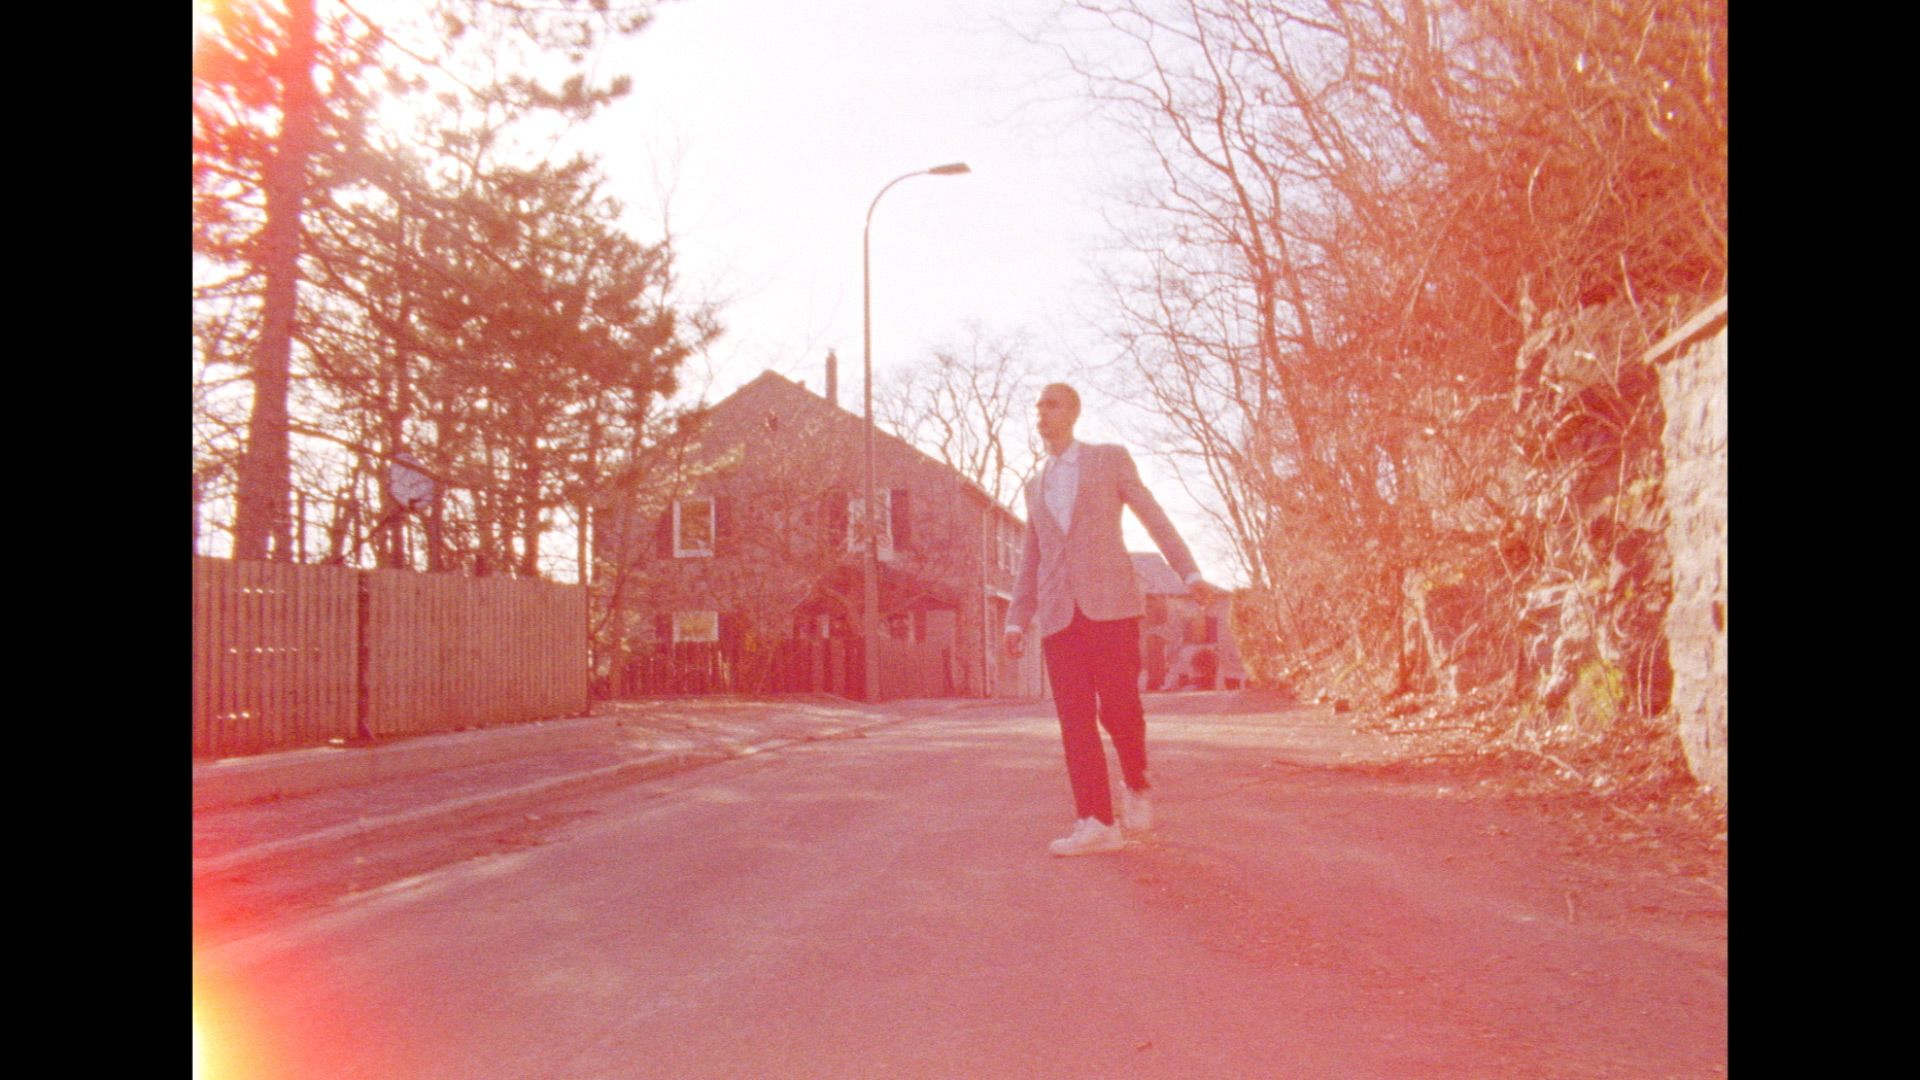 singer Yuki Dreams Again walking in empty street in broad daylight with flare up effect on camera in their promotional video filmed by Les Gamins